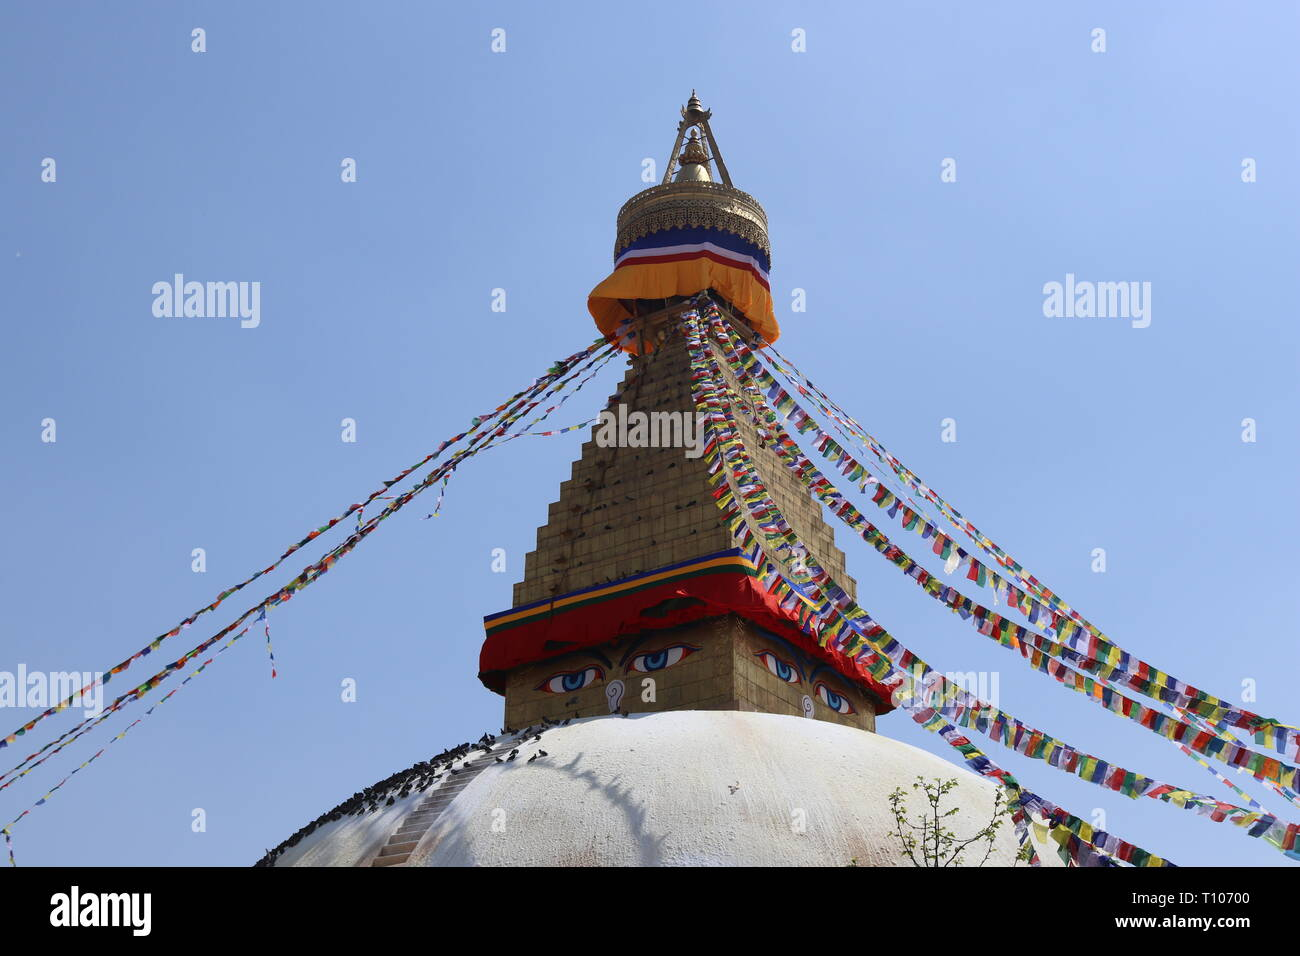 Boudhanath, also called the Khāsa Chaitya, UNESCO World Heritage Site, Kathmandu, Nepal - Stock Image